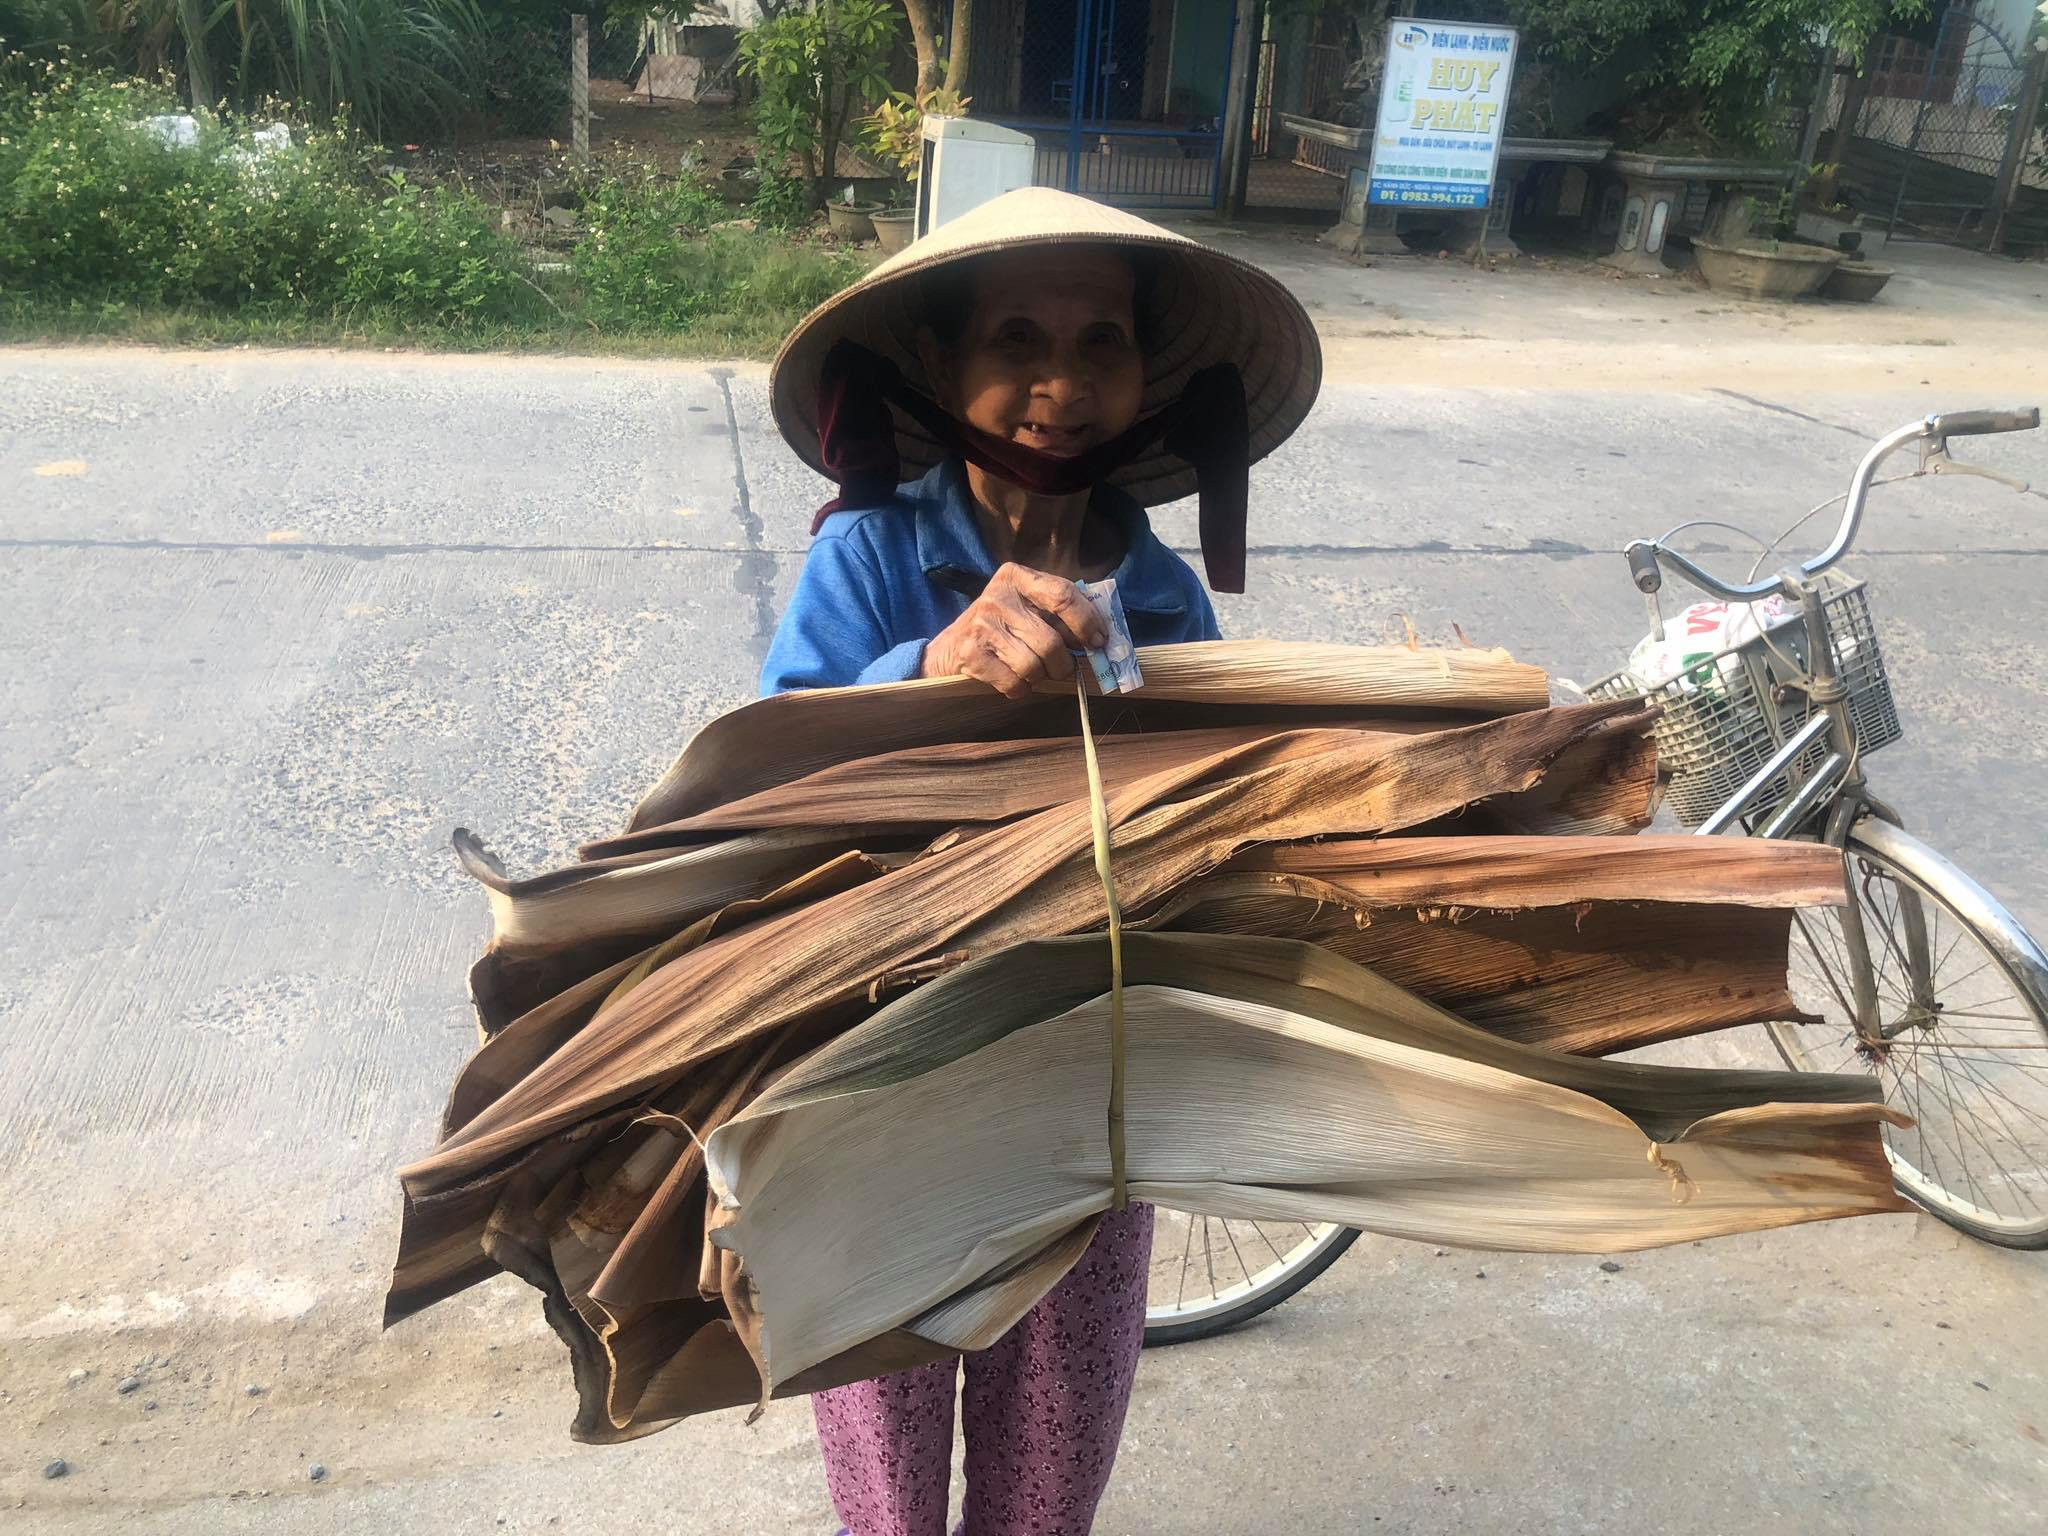 Tran Thi Mai from Phu Chau Village, Hanh Duc commune, Nghia Hanh District, Quang Ngai Province rides a bicycle delivering areca leaves to Nguyen Van Tuyen's factory, which makes tableware from the agricultural by-product. Photo: Lam Minh Khoa